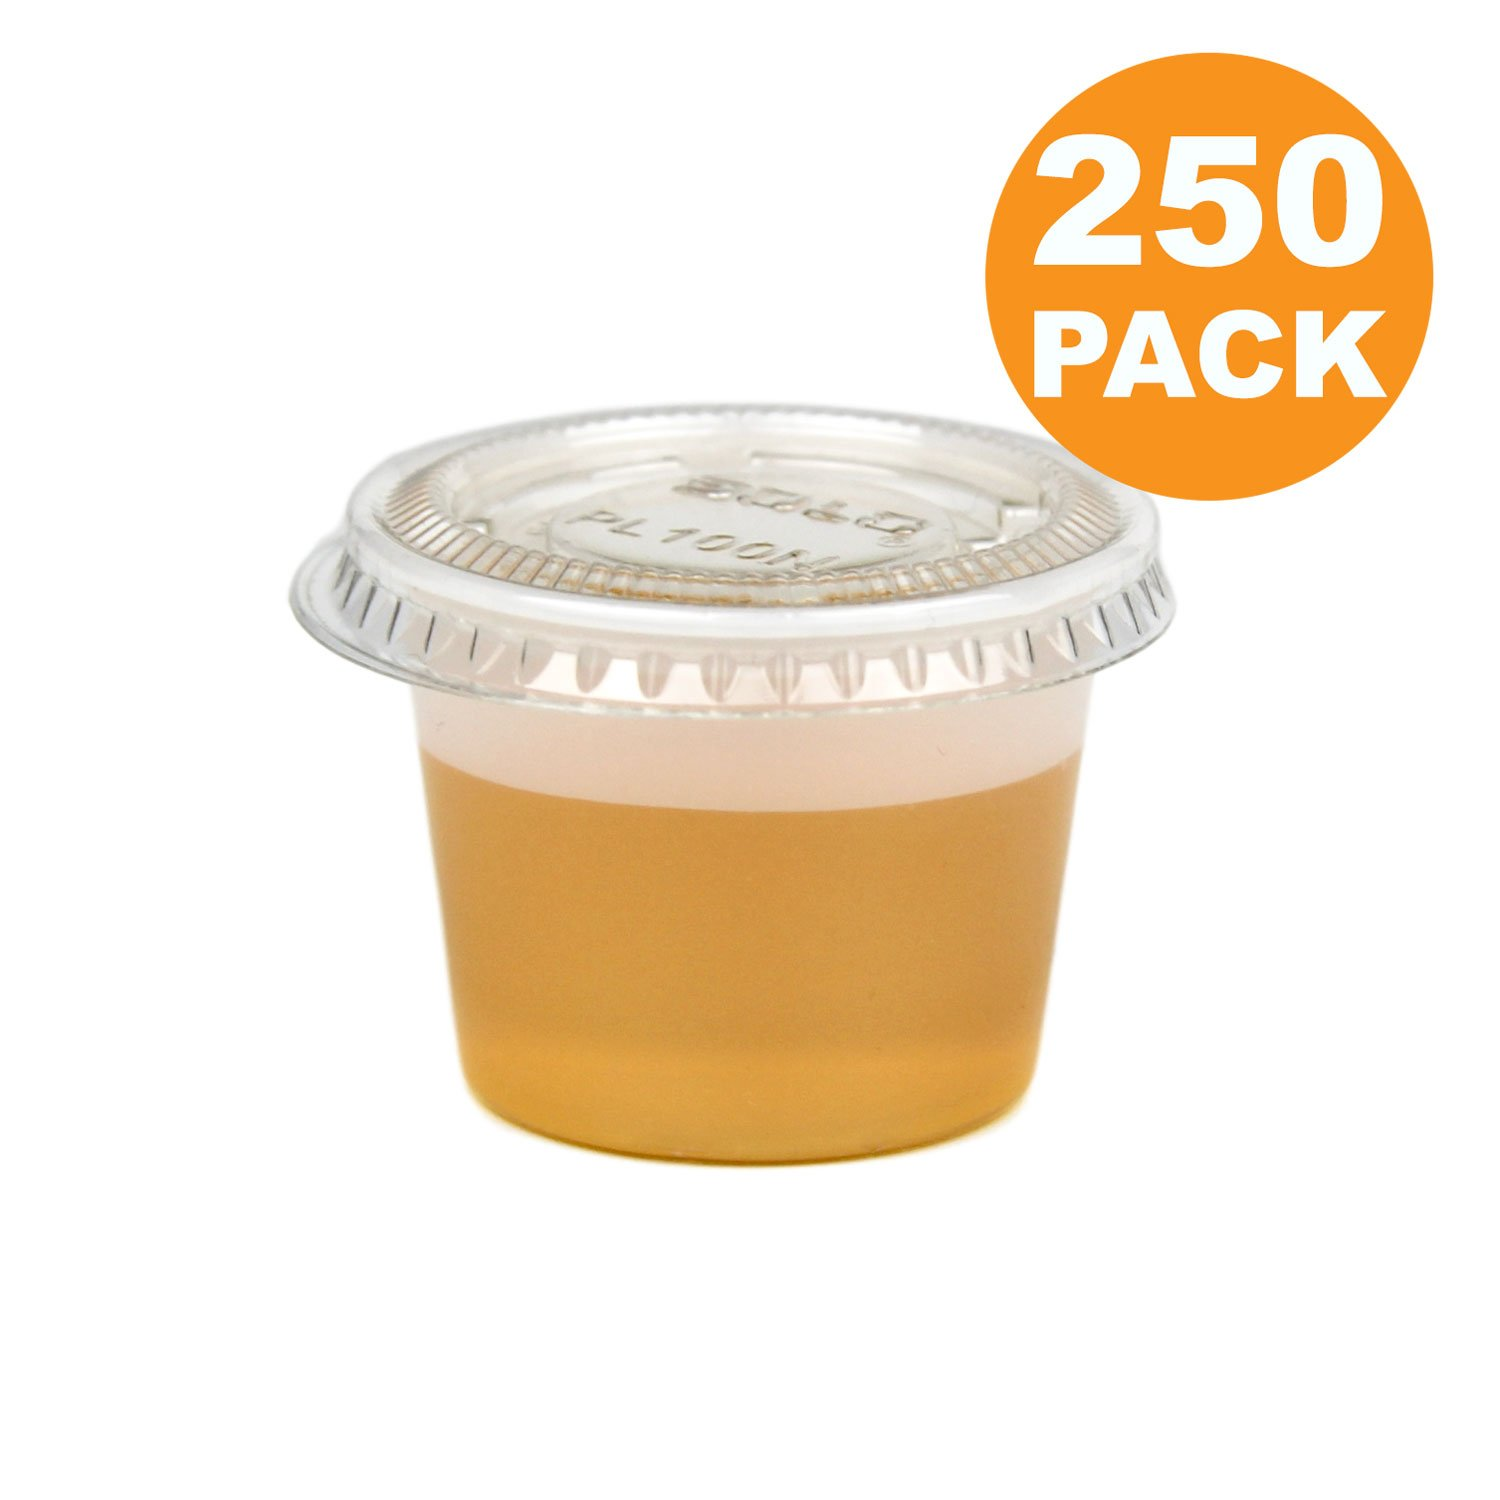 1 OZ Plastic Portion Cup with Clear Lids Disposable Jello Shots Sauce Condiment Souffle Dressing Mini Containers [250 Pack]